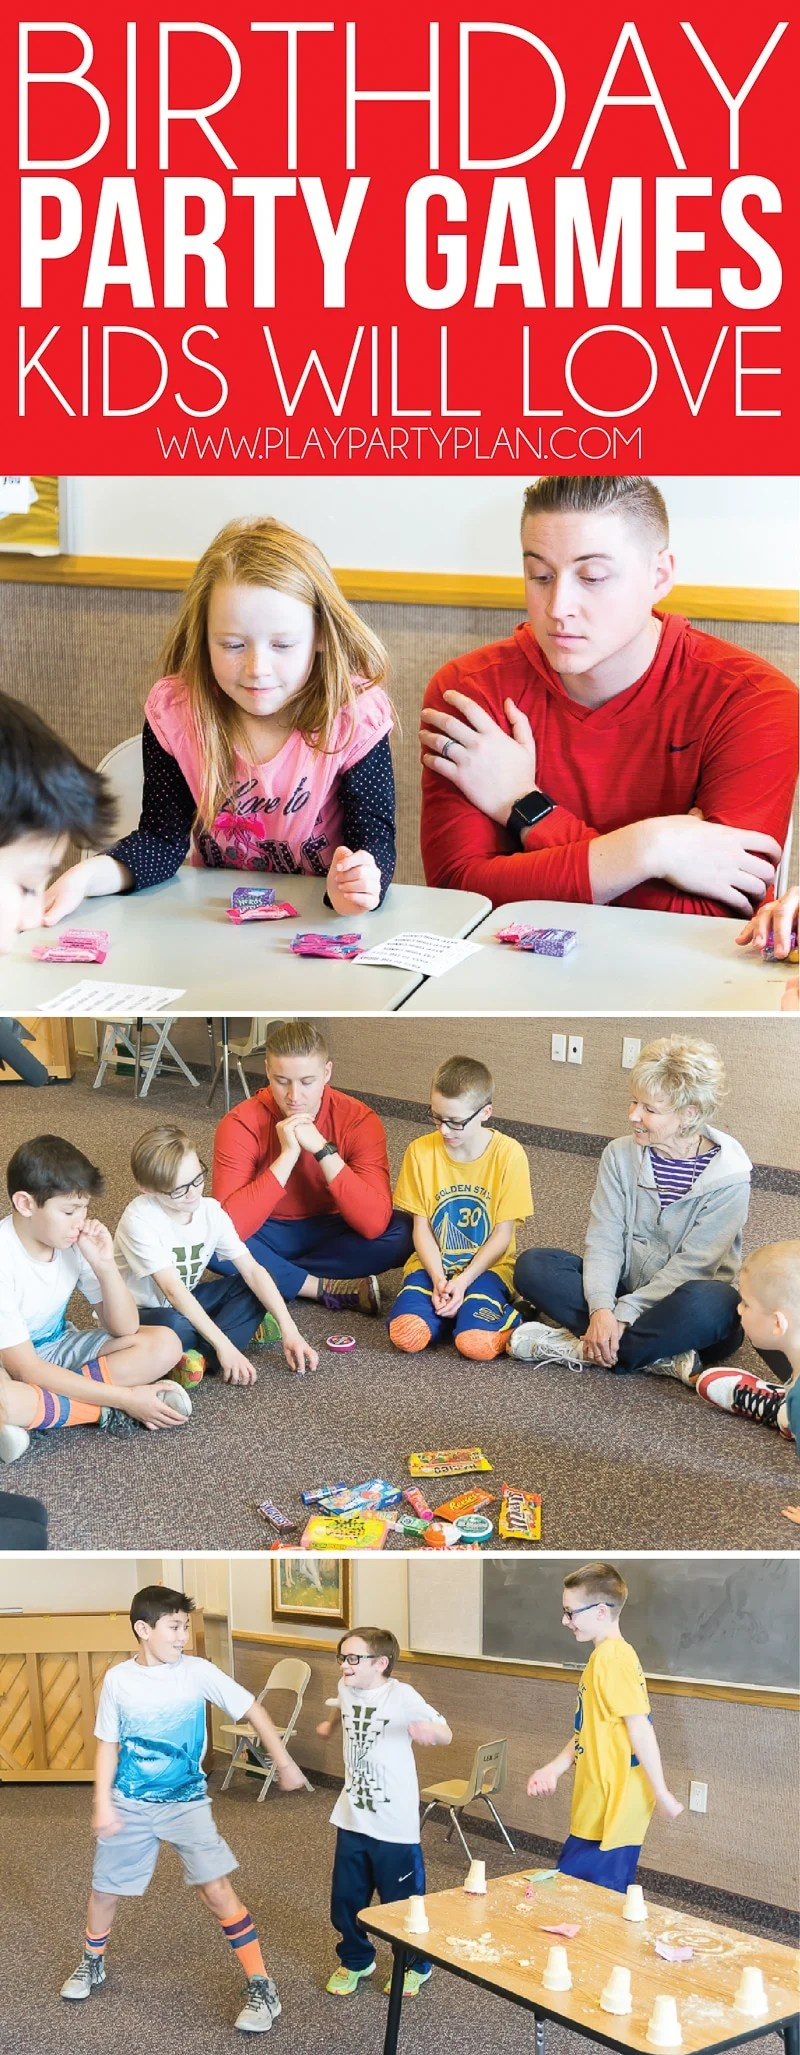 Hilarious Birthday Party Games For Kids  Adults - Play Party Plan-5191